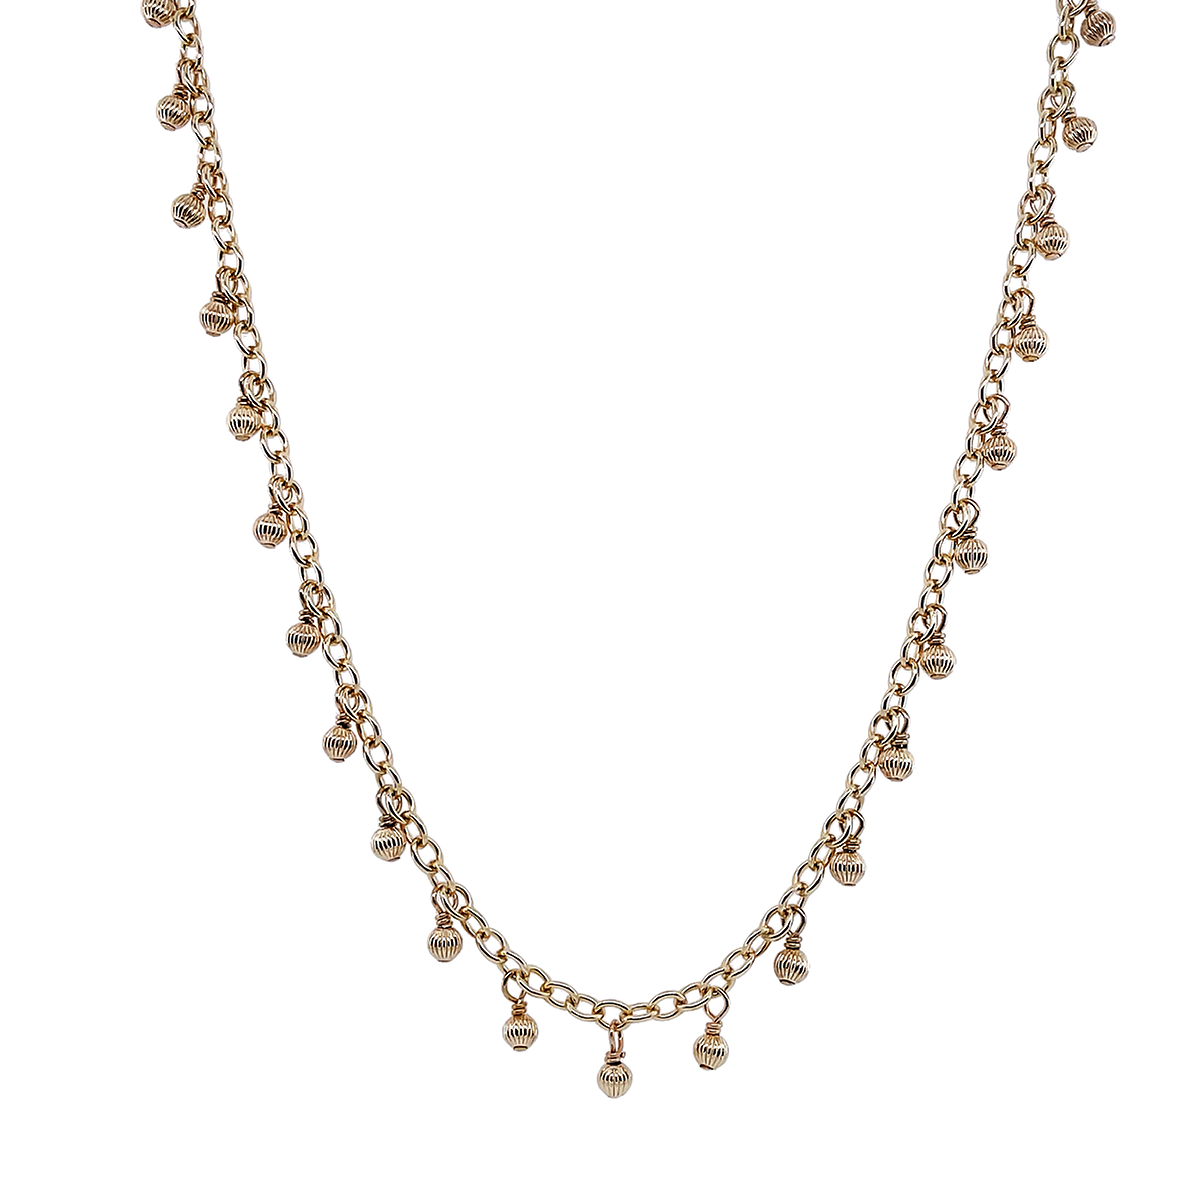 Gold-Filled Bead & Chain Necklace, 16